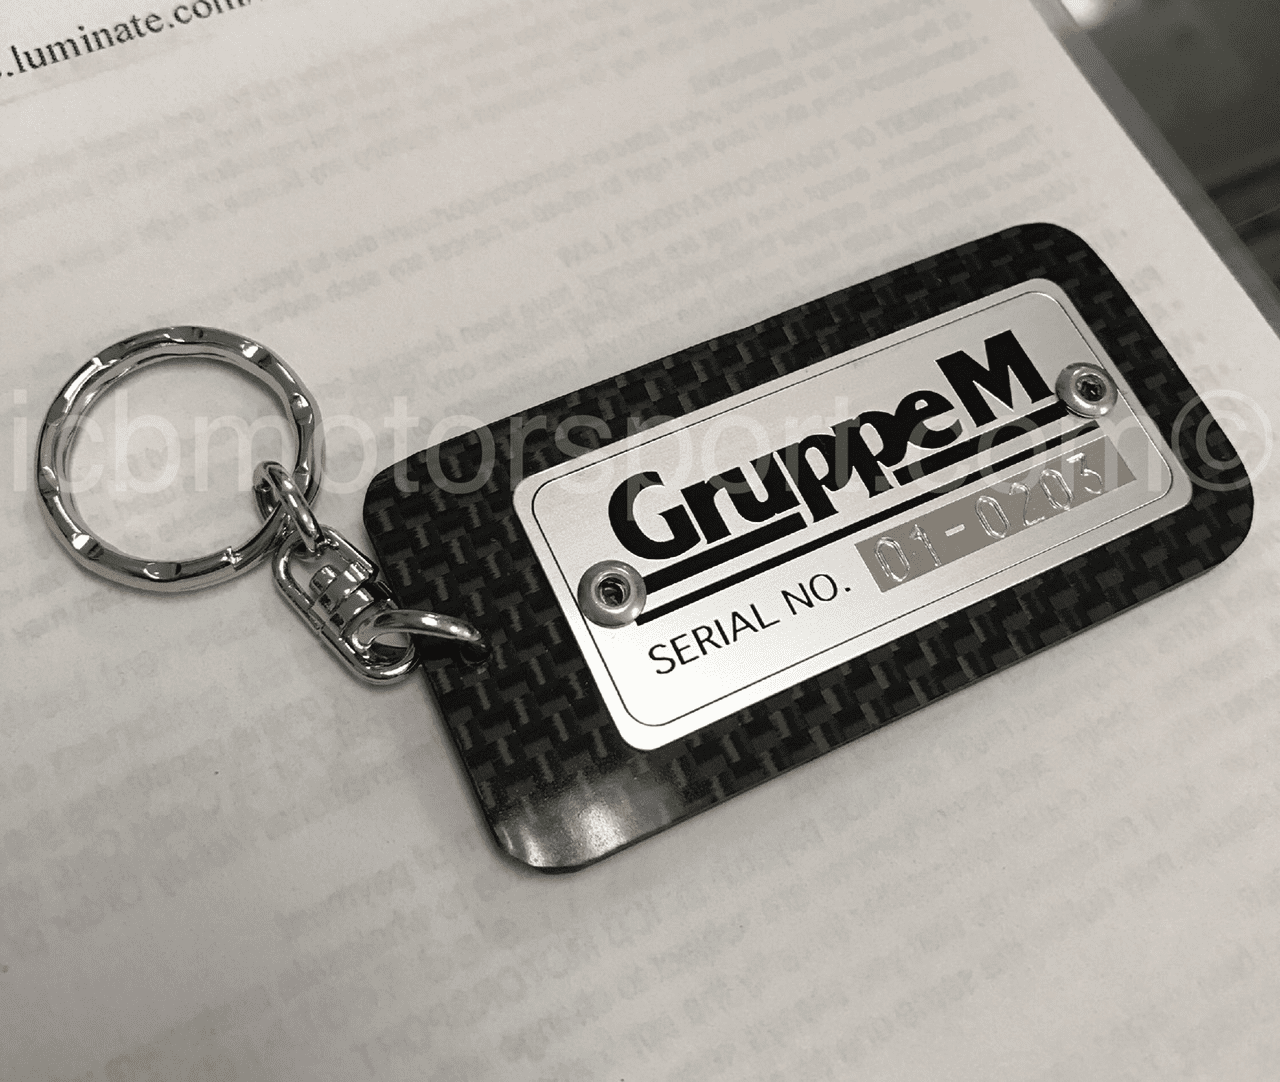 GruppeM Carbon Fiber Key Chain with Metal Riveted Badge